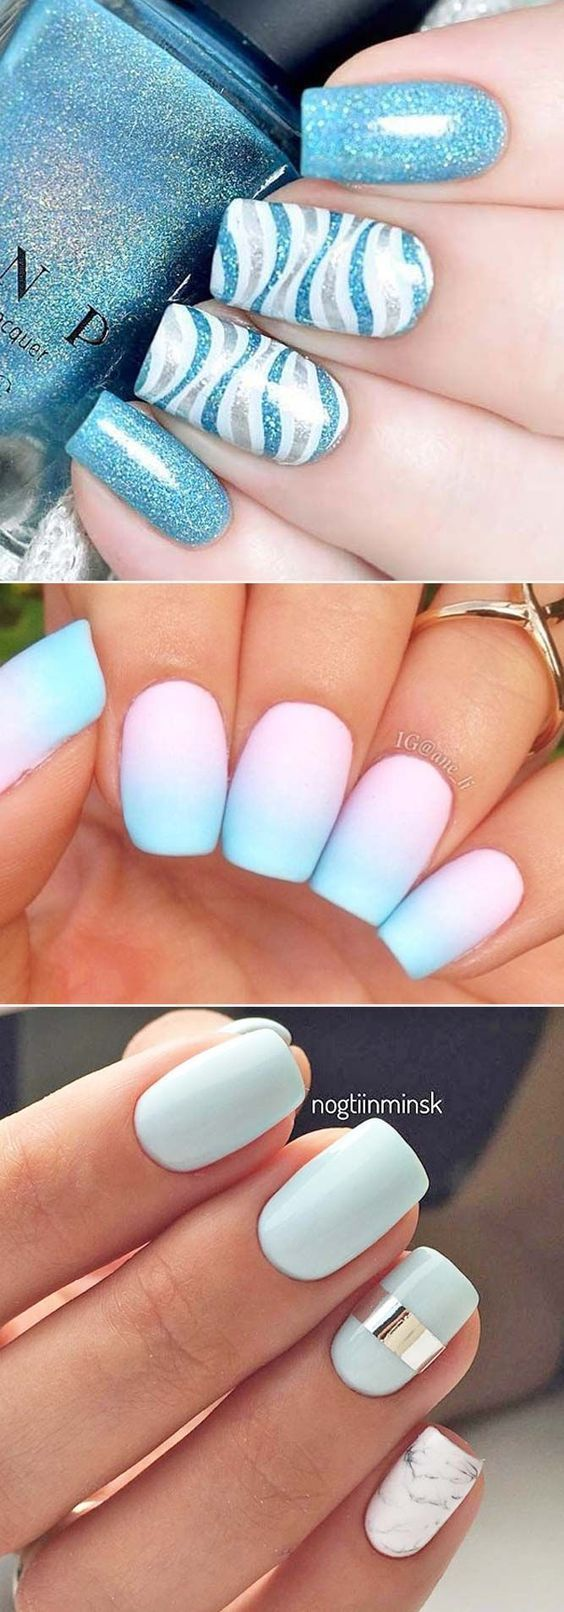 Looking for some new fun designs for summer nails? Check out our favorite nail art designs and don't forget to choose your favorite!